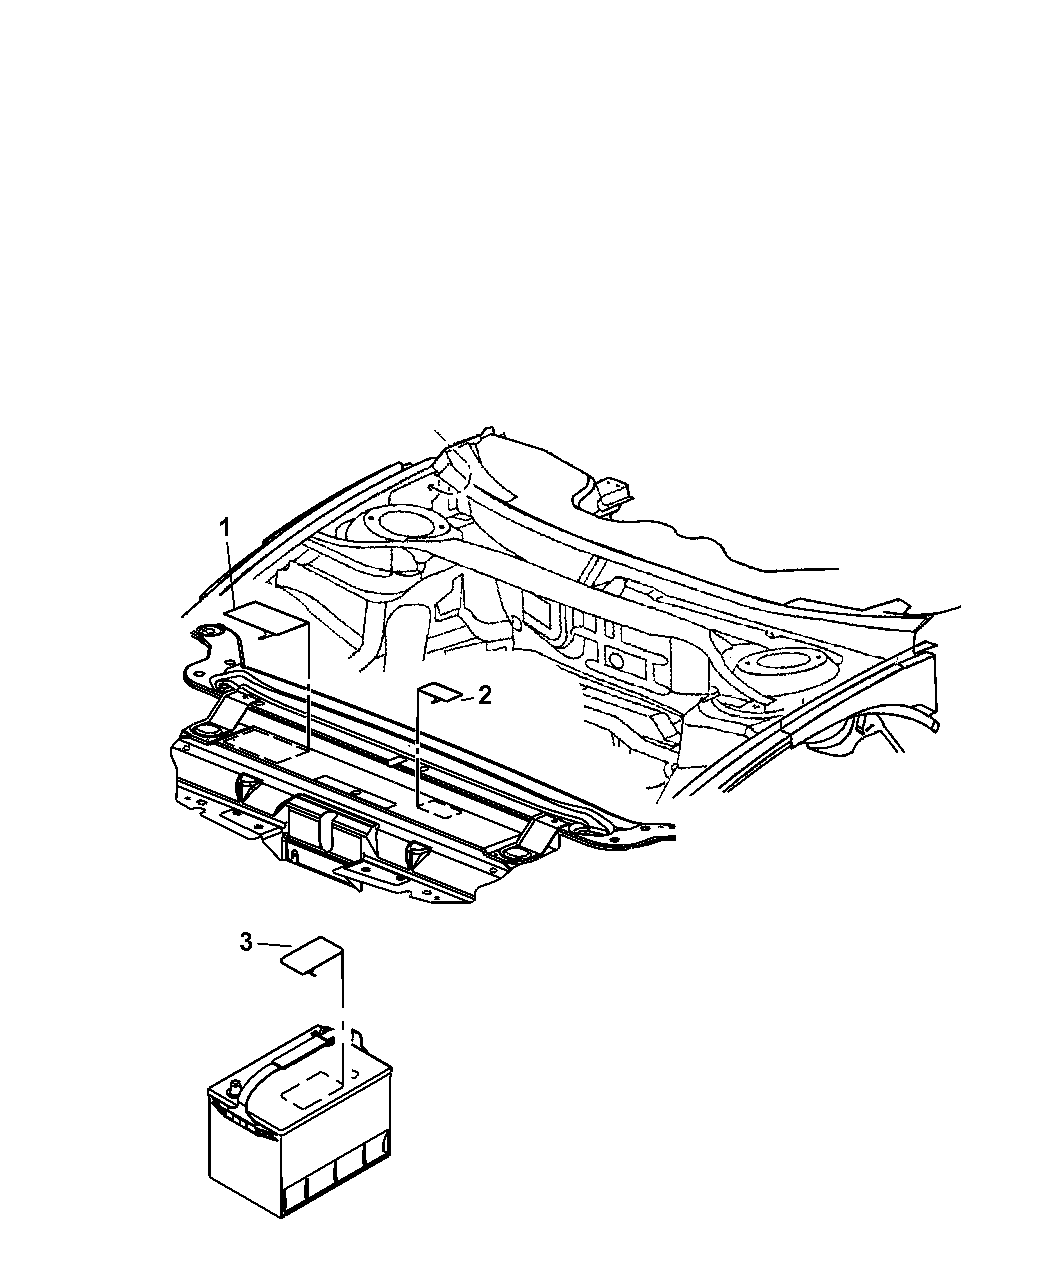 2009 Dodge Charger Engine Compartment